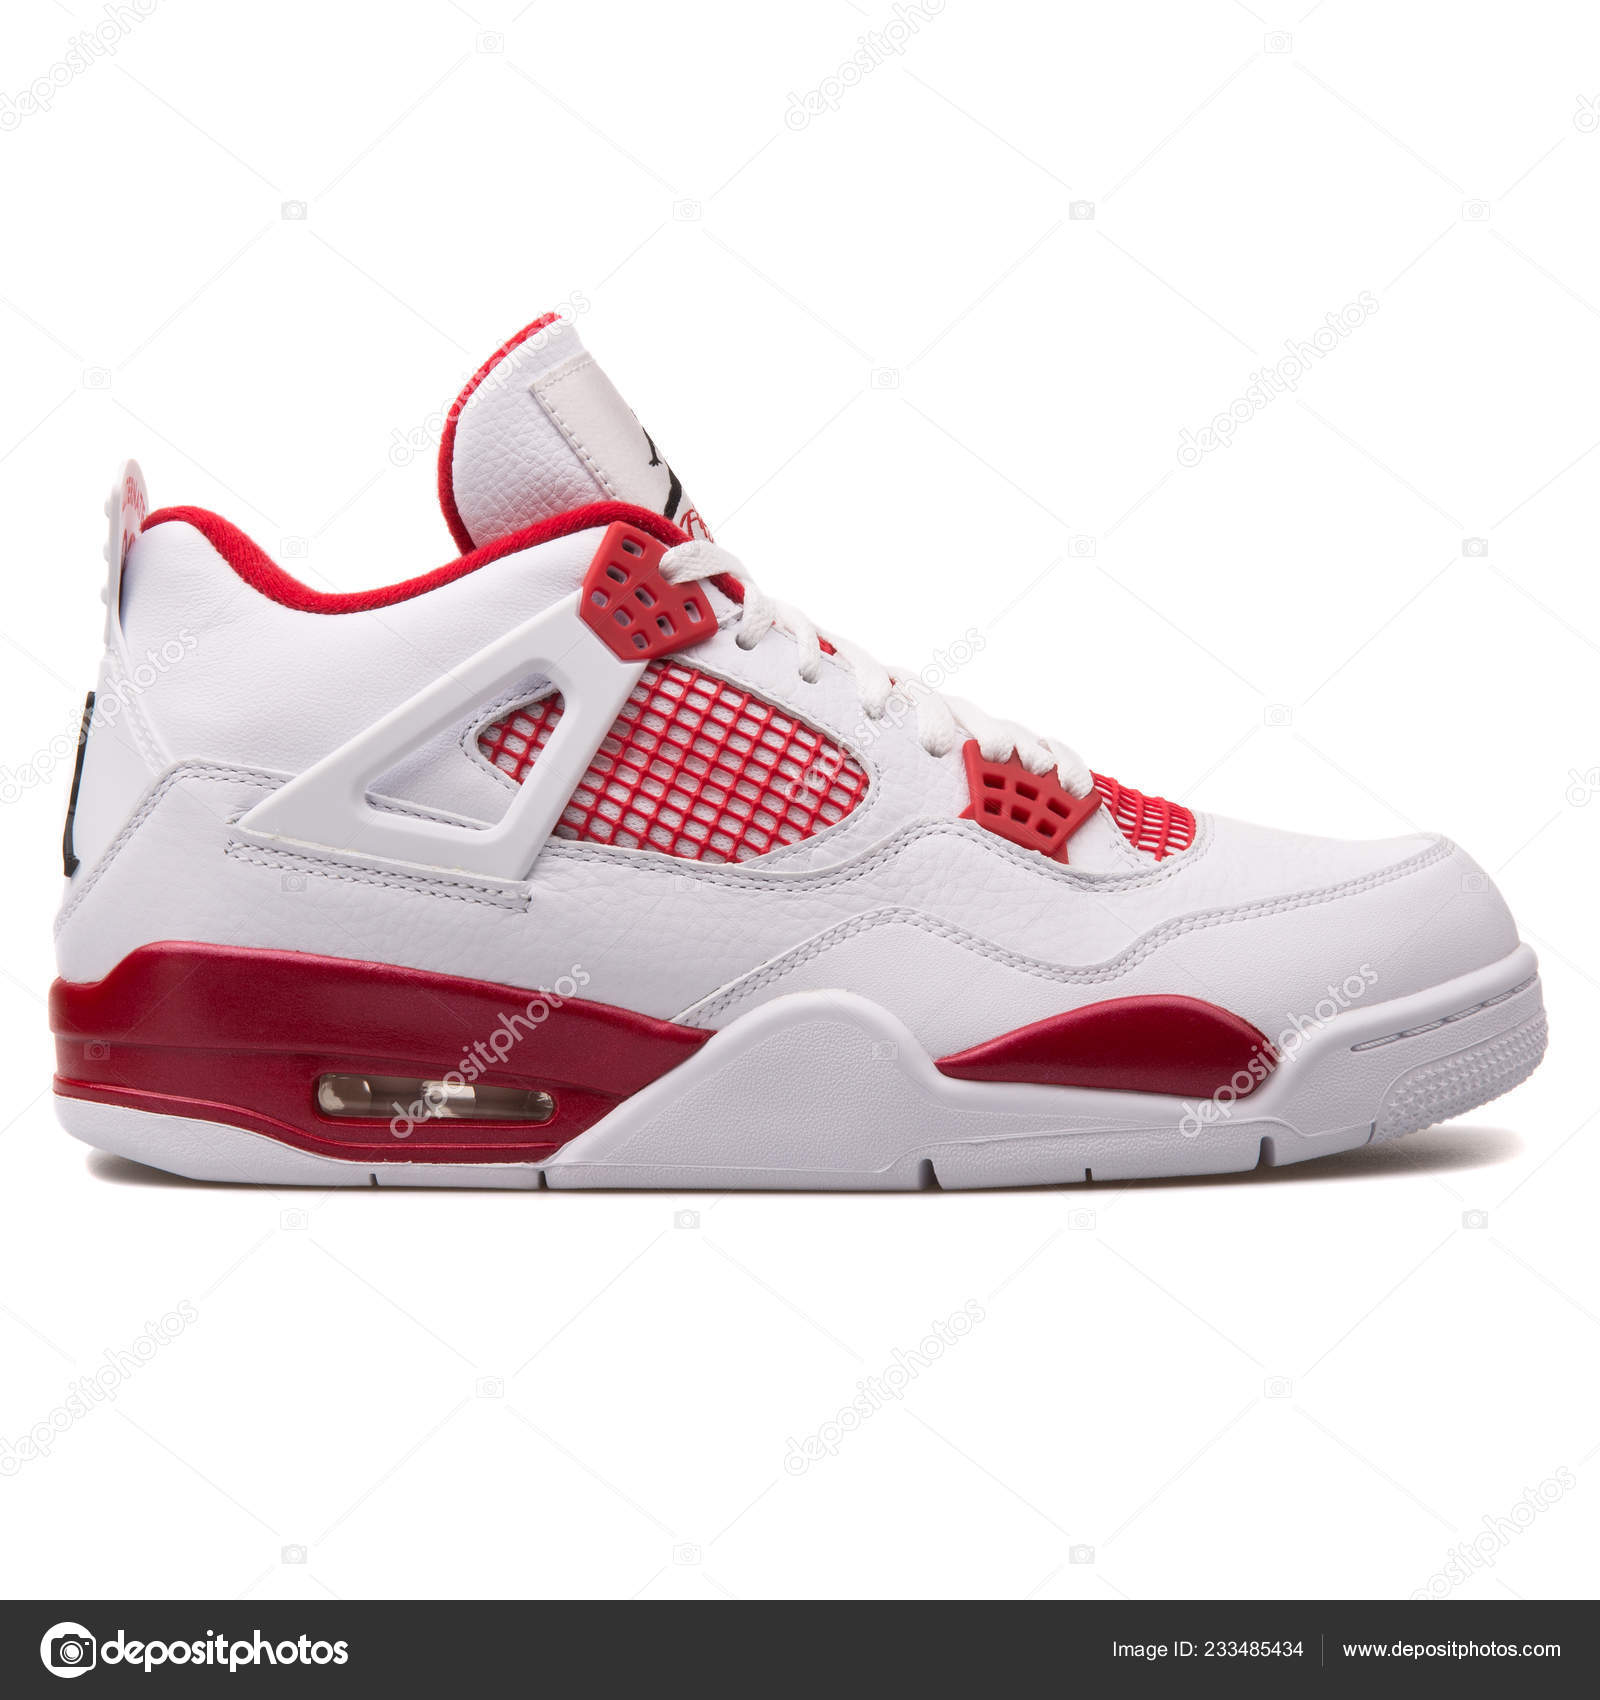 Nacarado moral Radar  Vienna Austria June 2017 Nike Air Jordan Retro White Red – Stock Editorial  Photo © xMarshallfilms #233485434